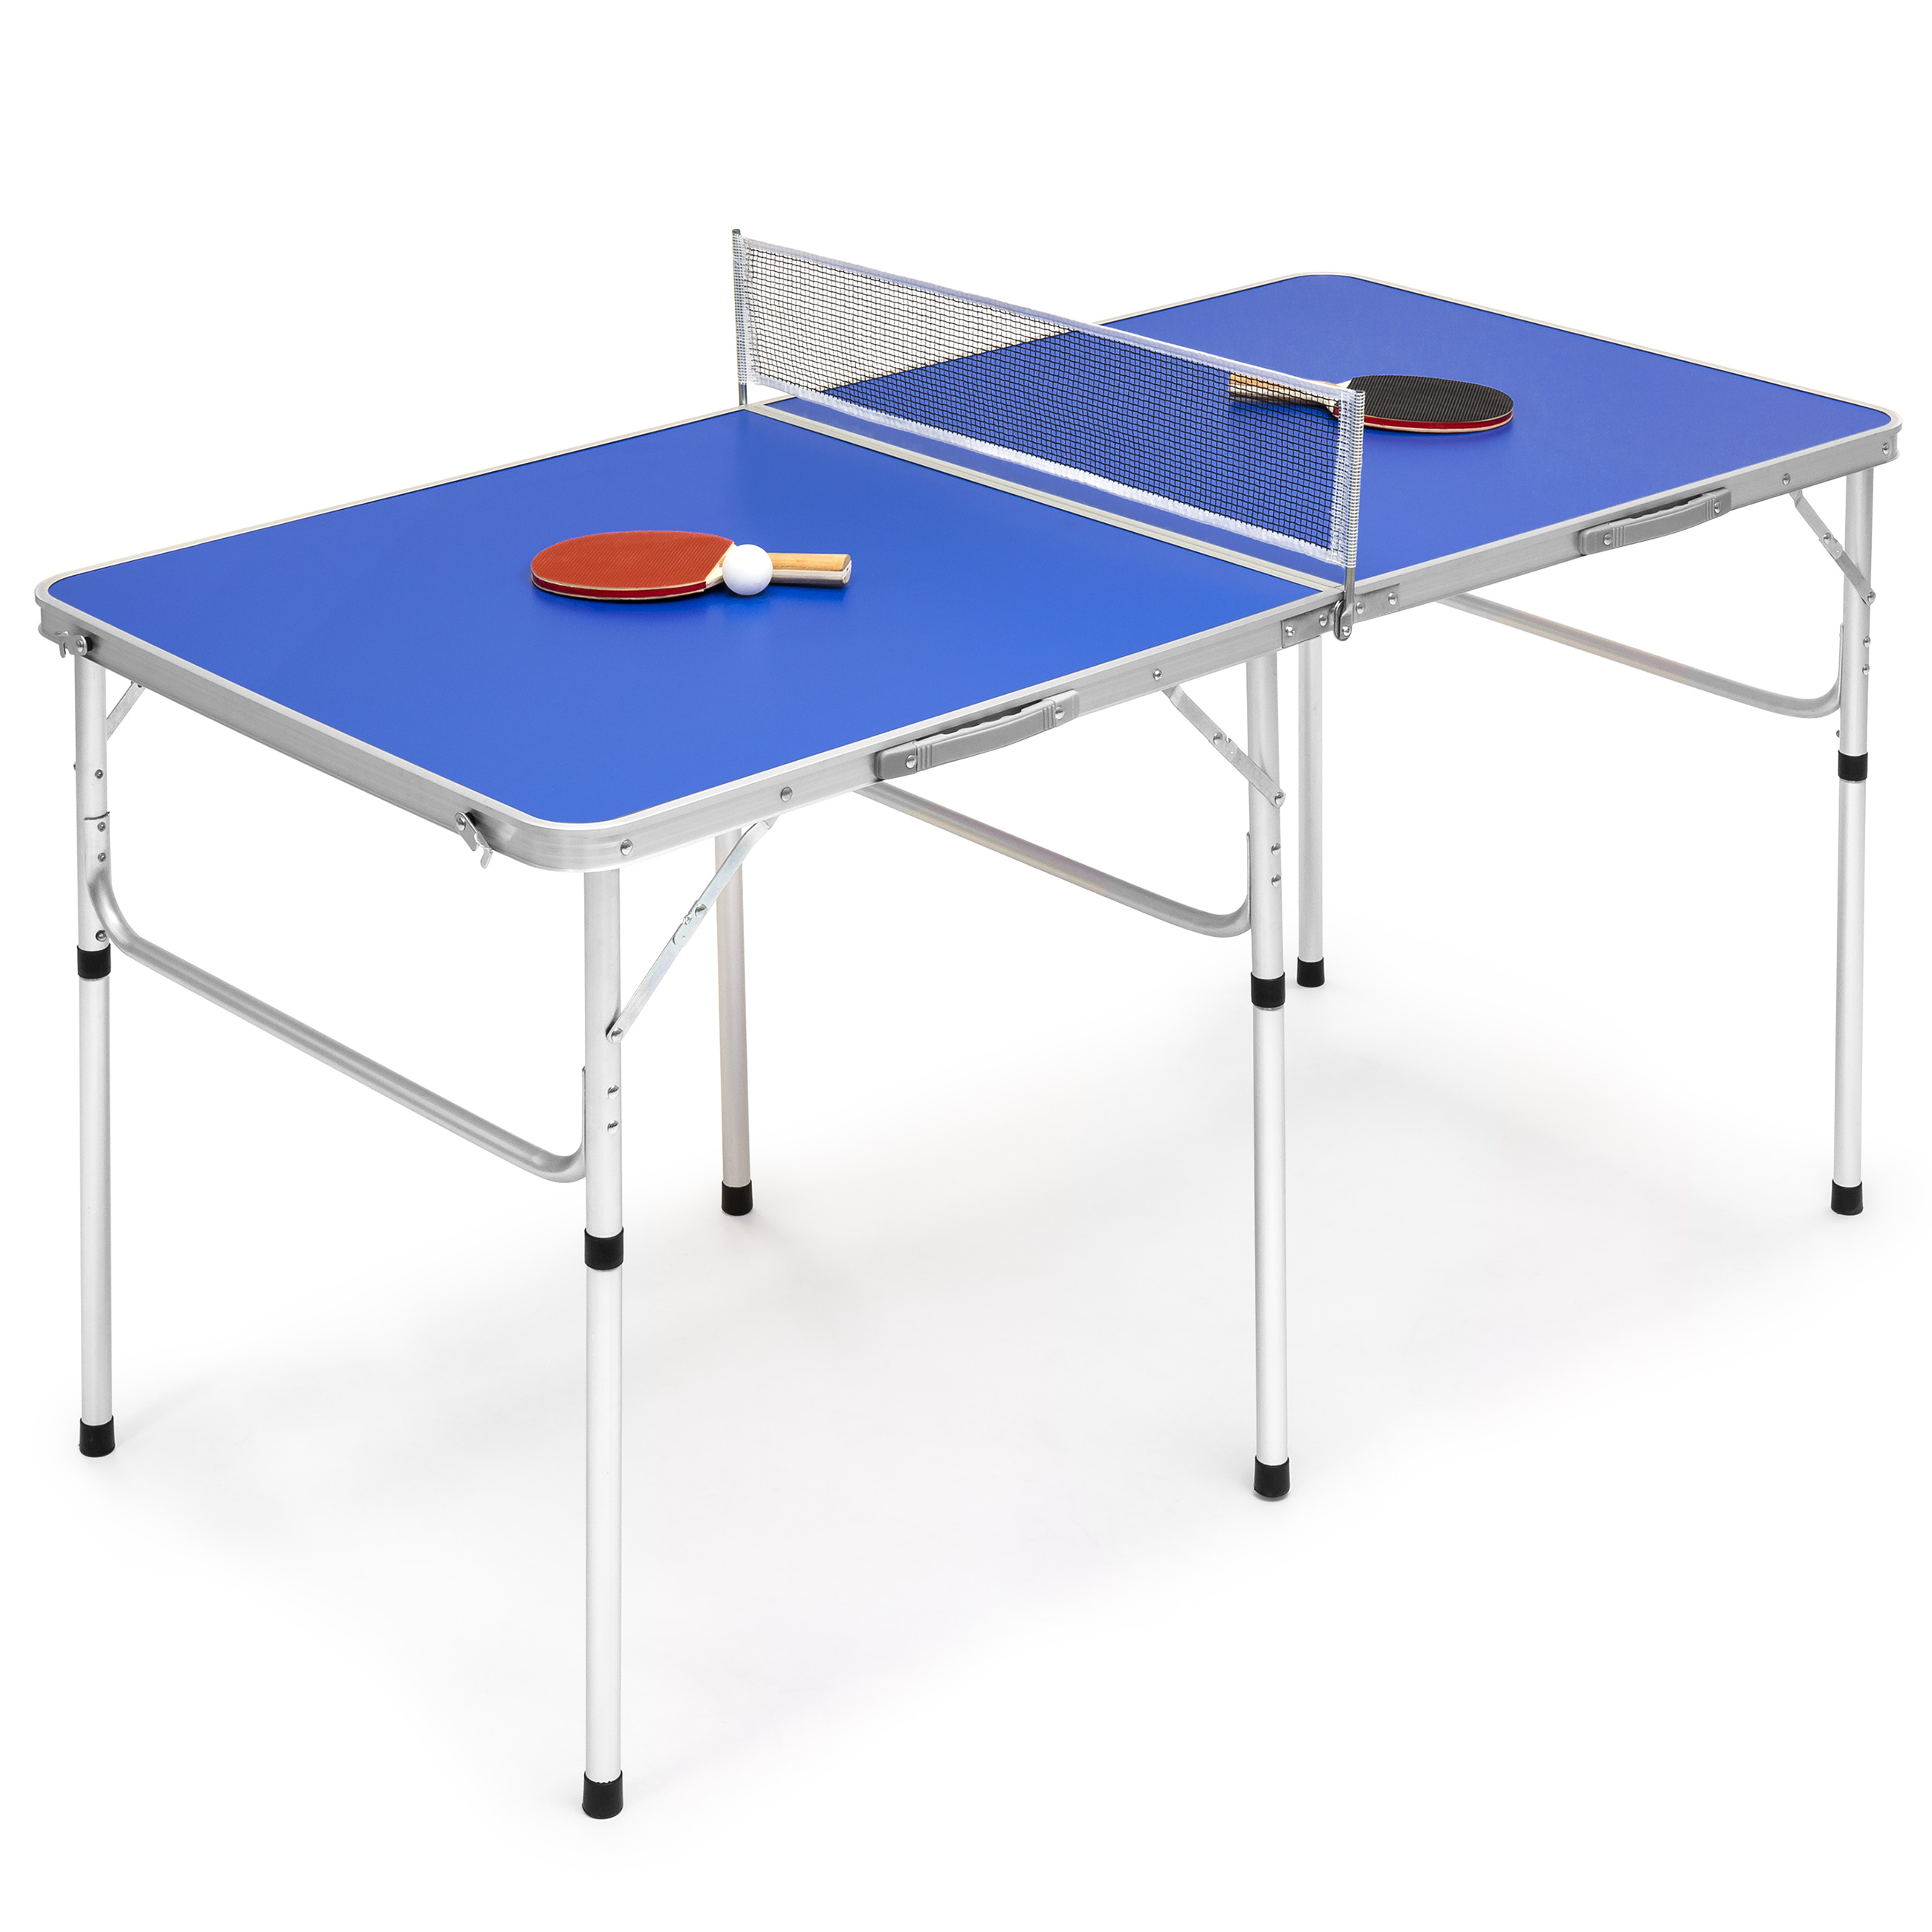 Best Choice Products 58in Indoor Outdoor Portable Folding Ping Pong Table Tennis Game Set w/ 2 Balls, 2 Paddles, Net,  Built-In Handles - Blue